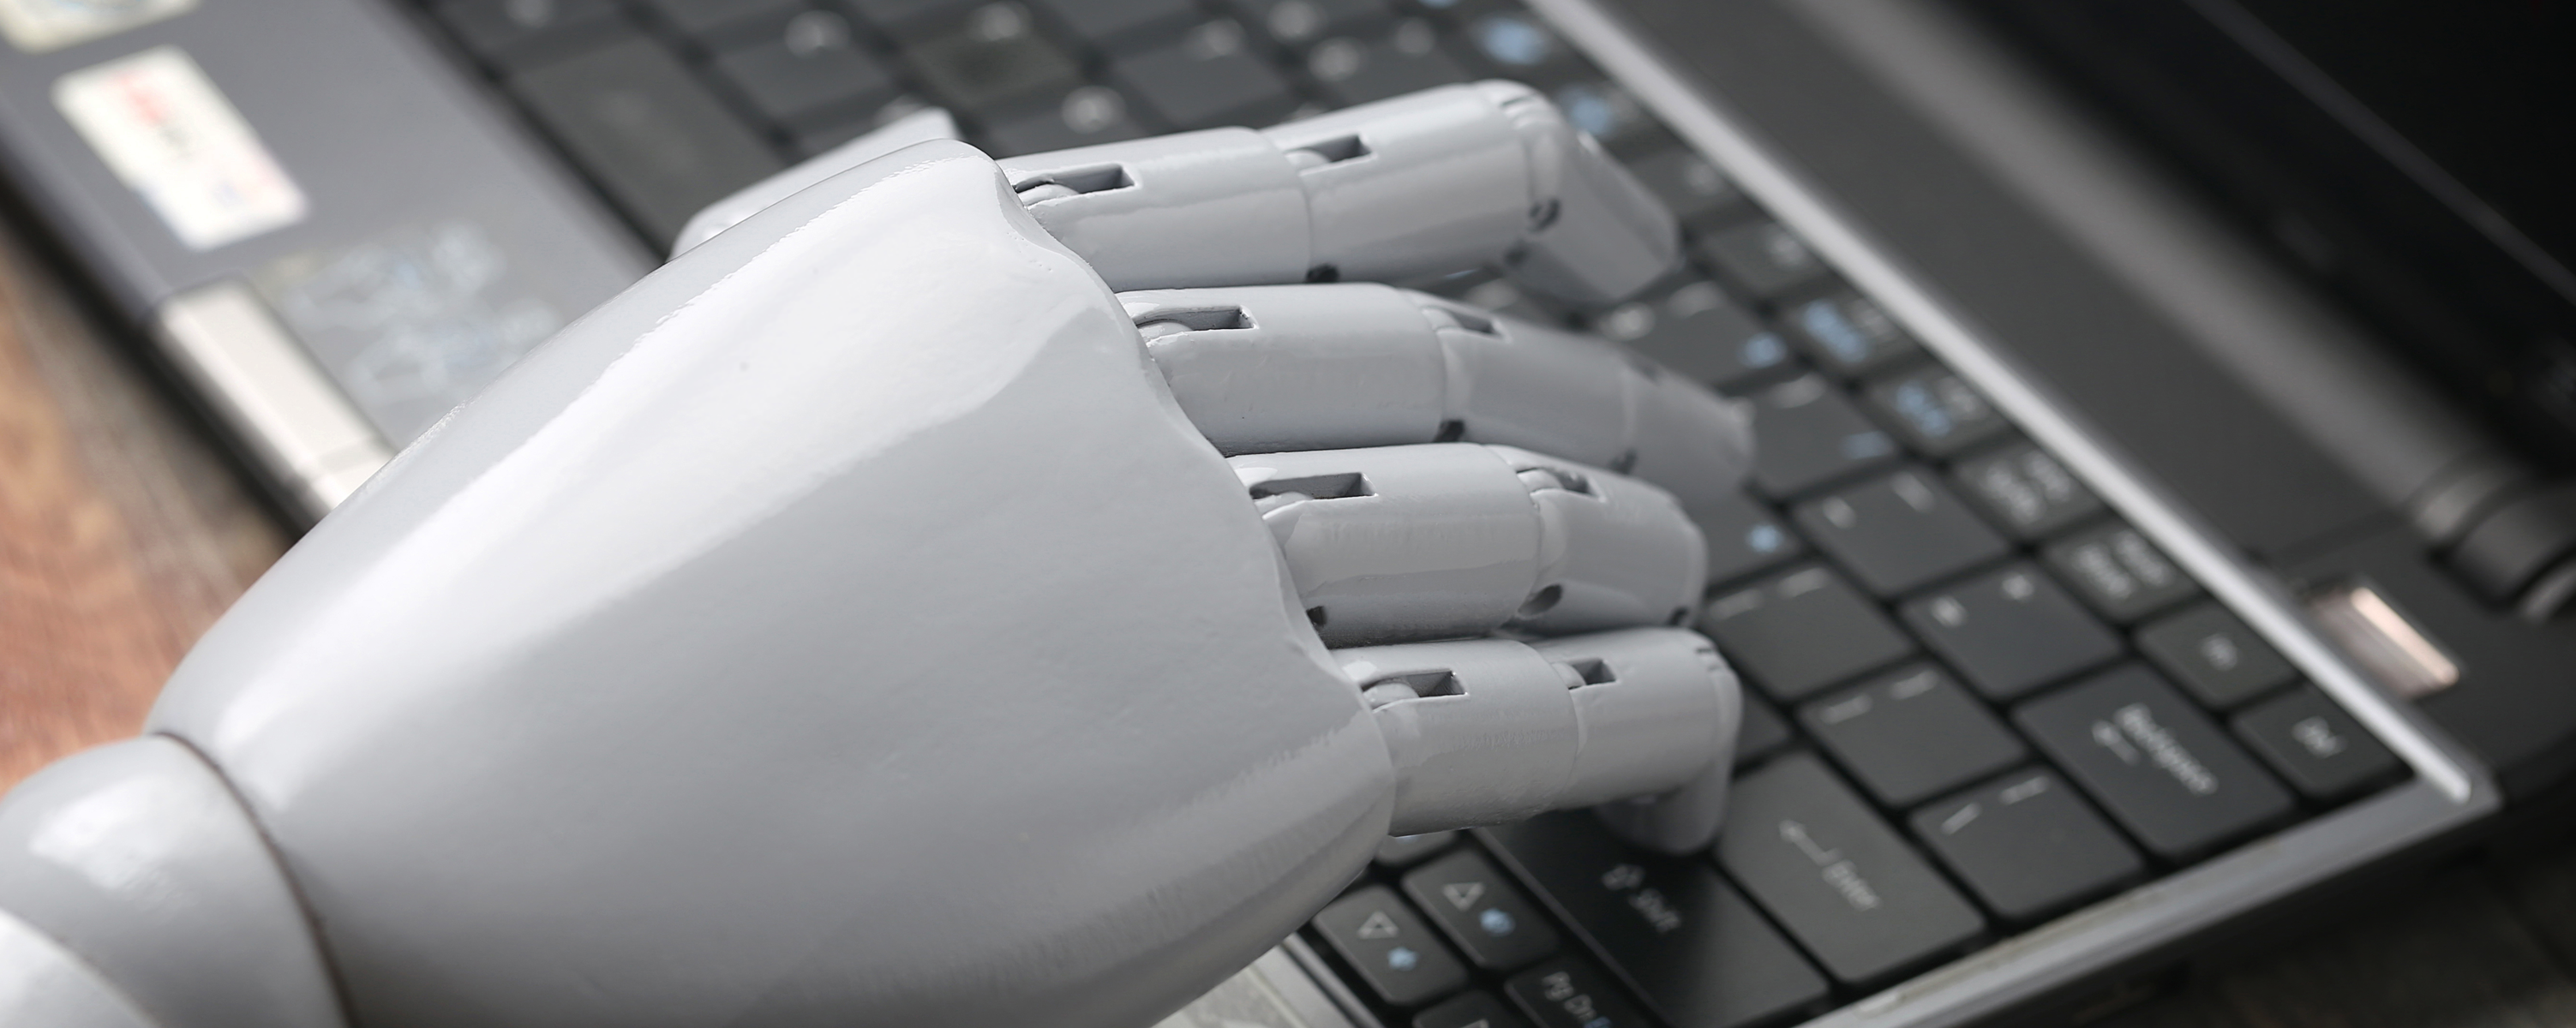 sleek white robotic hand resting on laptop computer keyboard_Open Access BPO